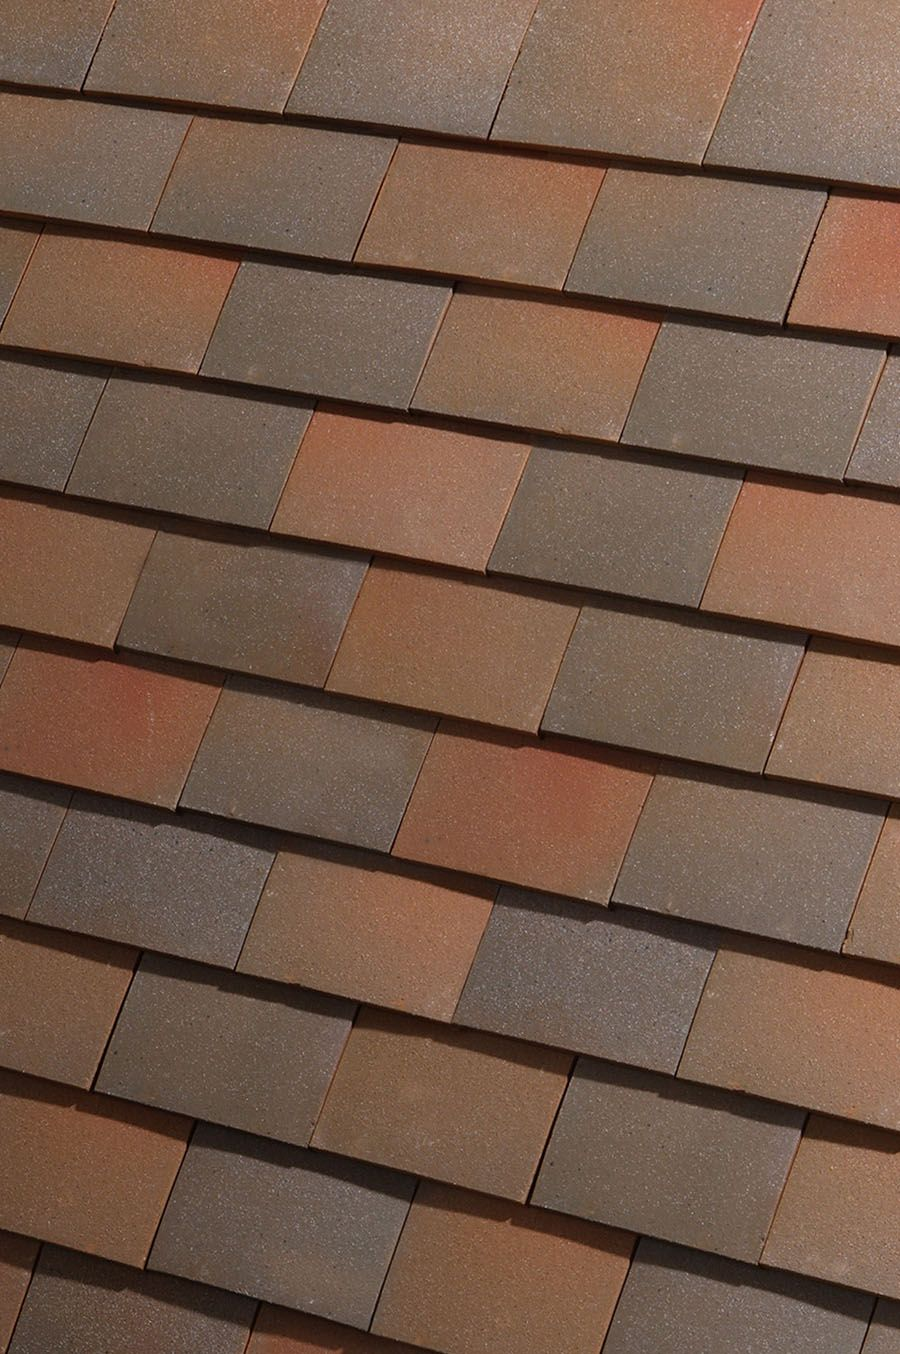 7 Roof Ideas Clay Roof Tiles Clay Roofs Roof